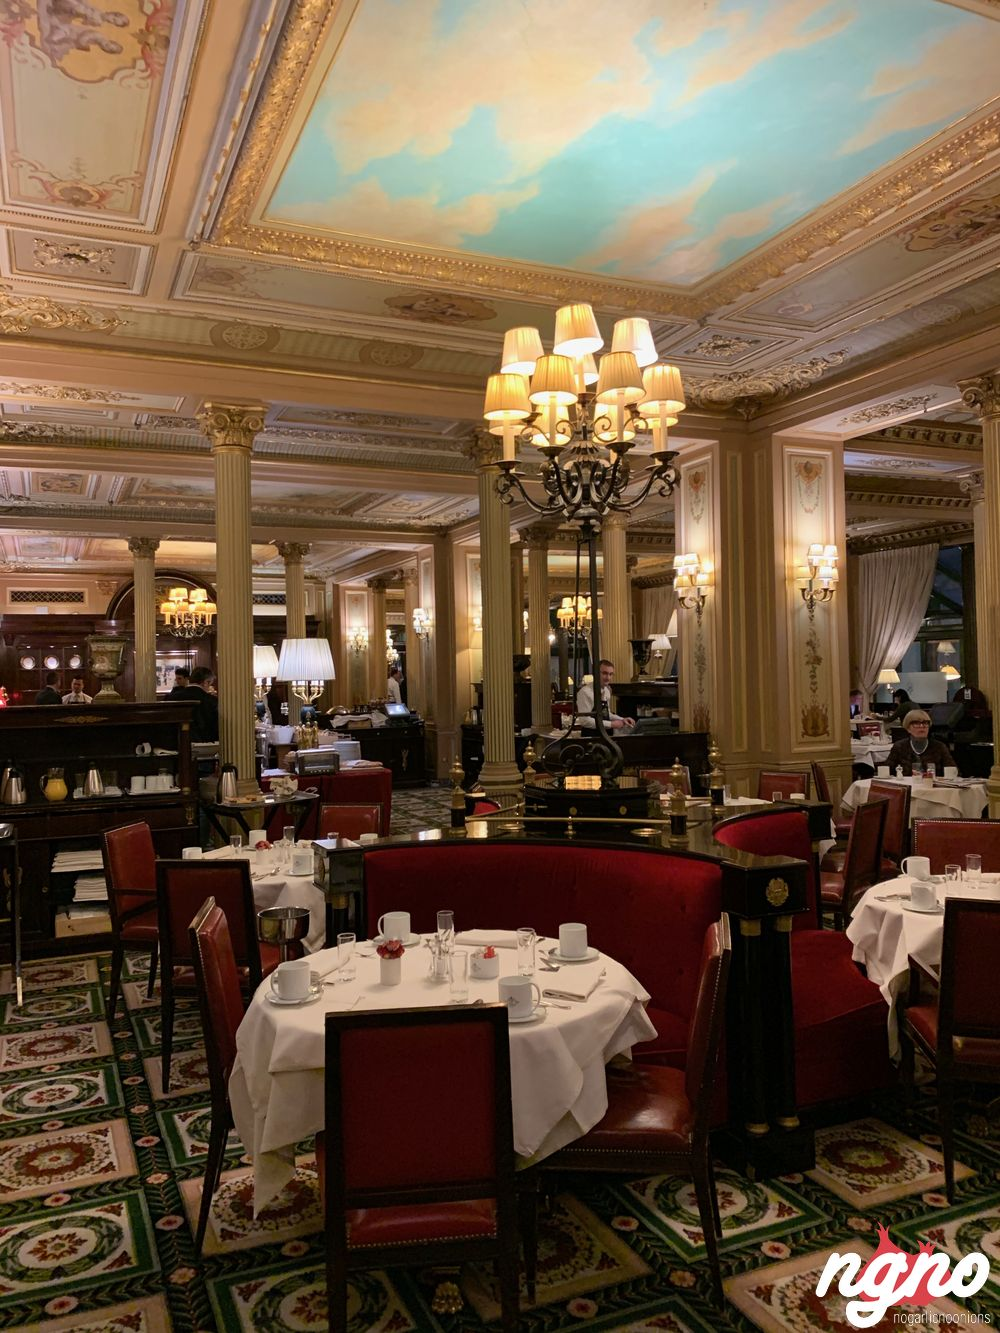 cafe-de-la-paix-intercontinental-le-grand-paris-nogarlicnoonions-802019-02-22-11-08-46